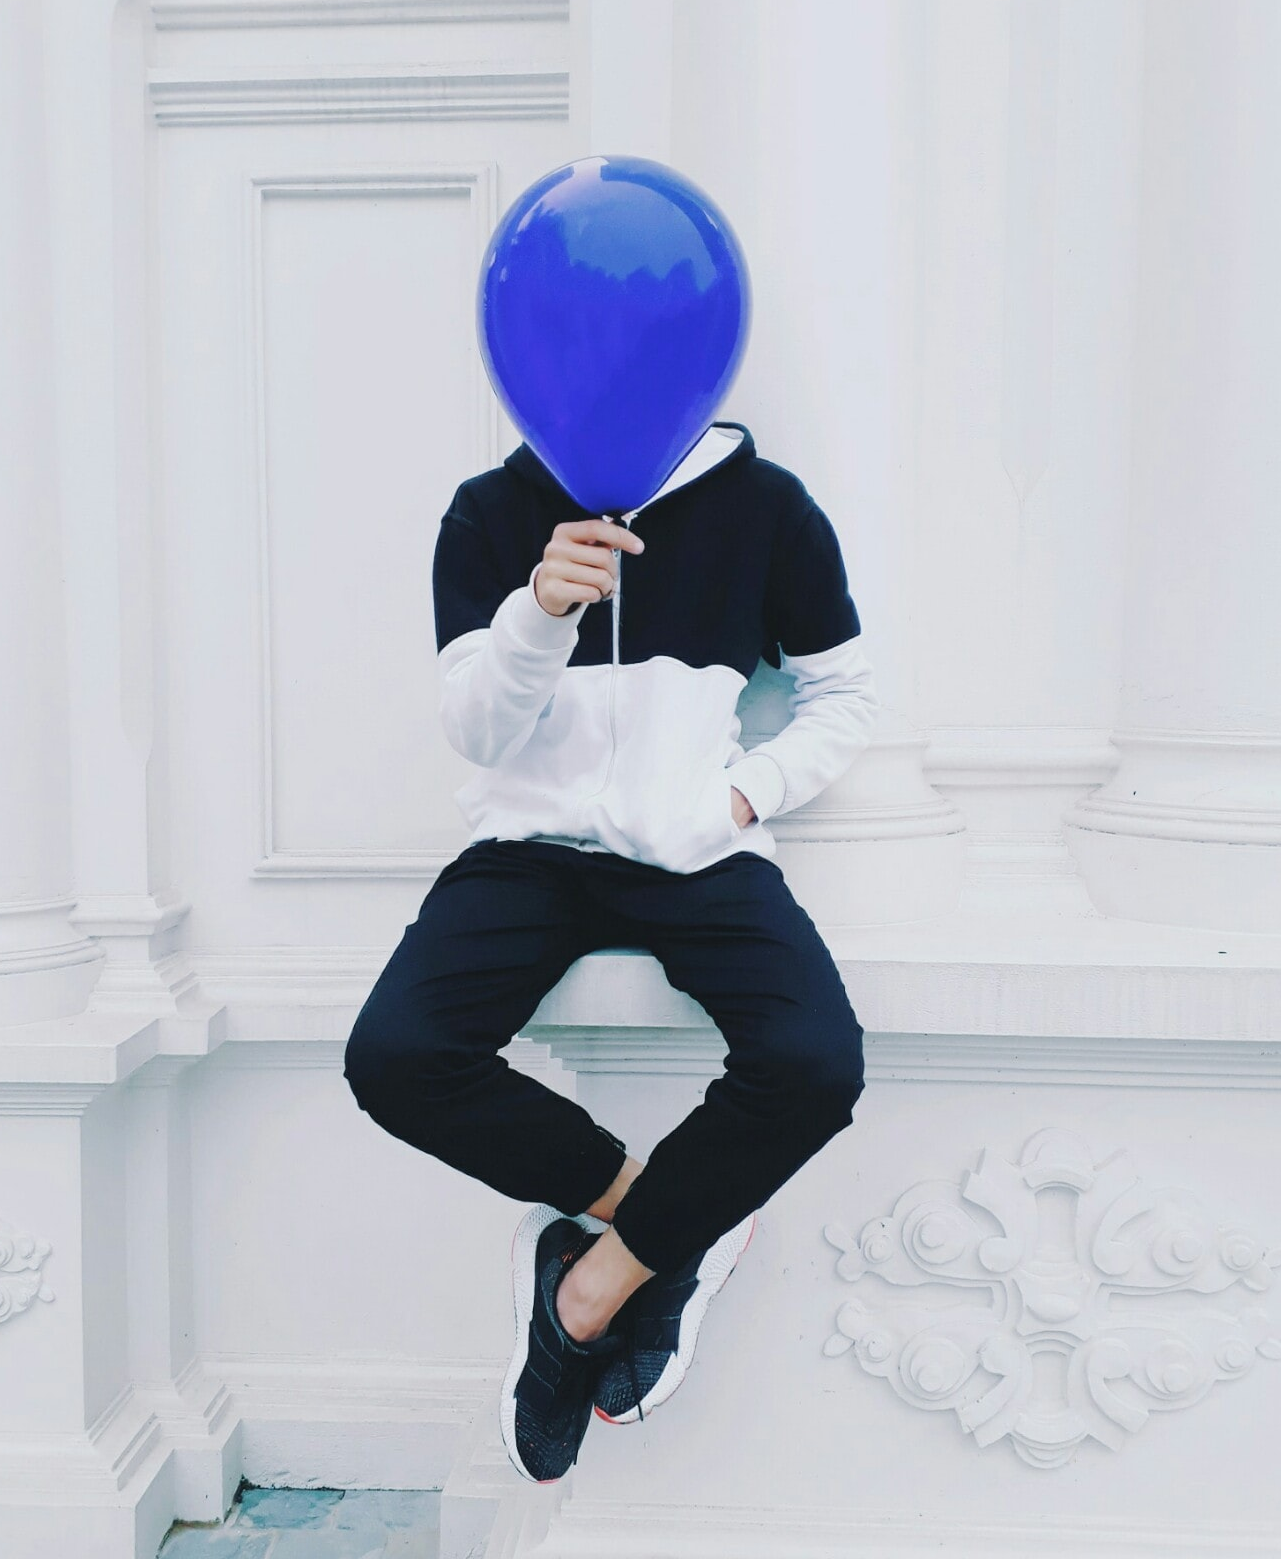 A man holding a blue ballon which covers his face.